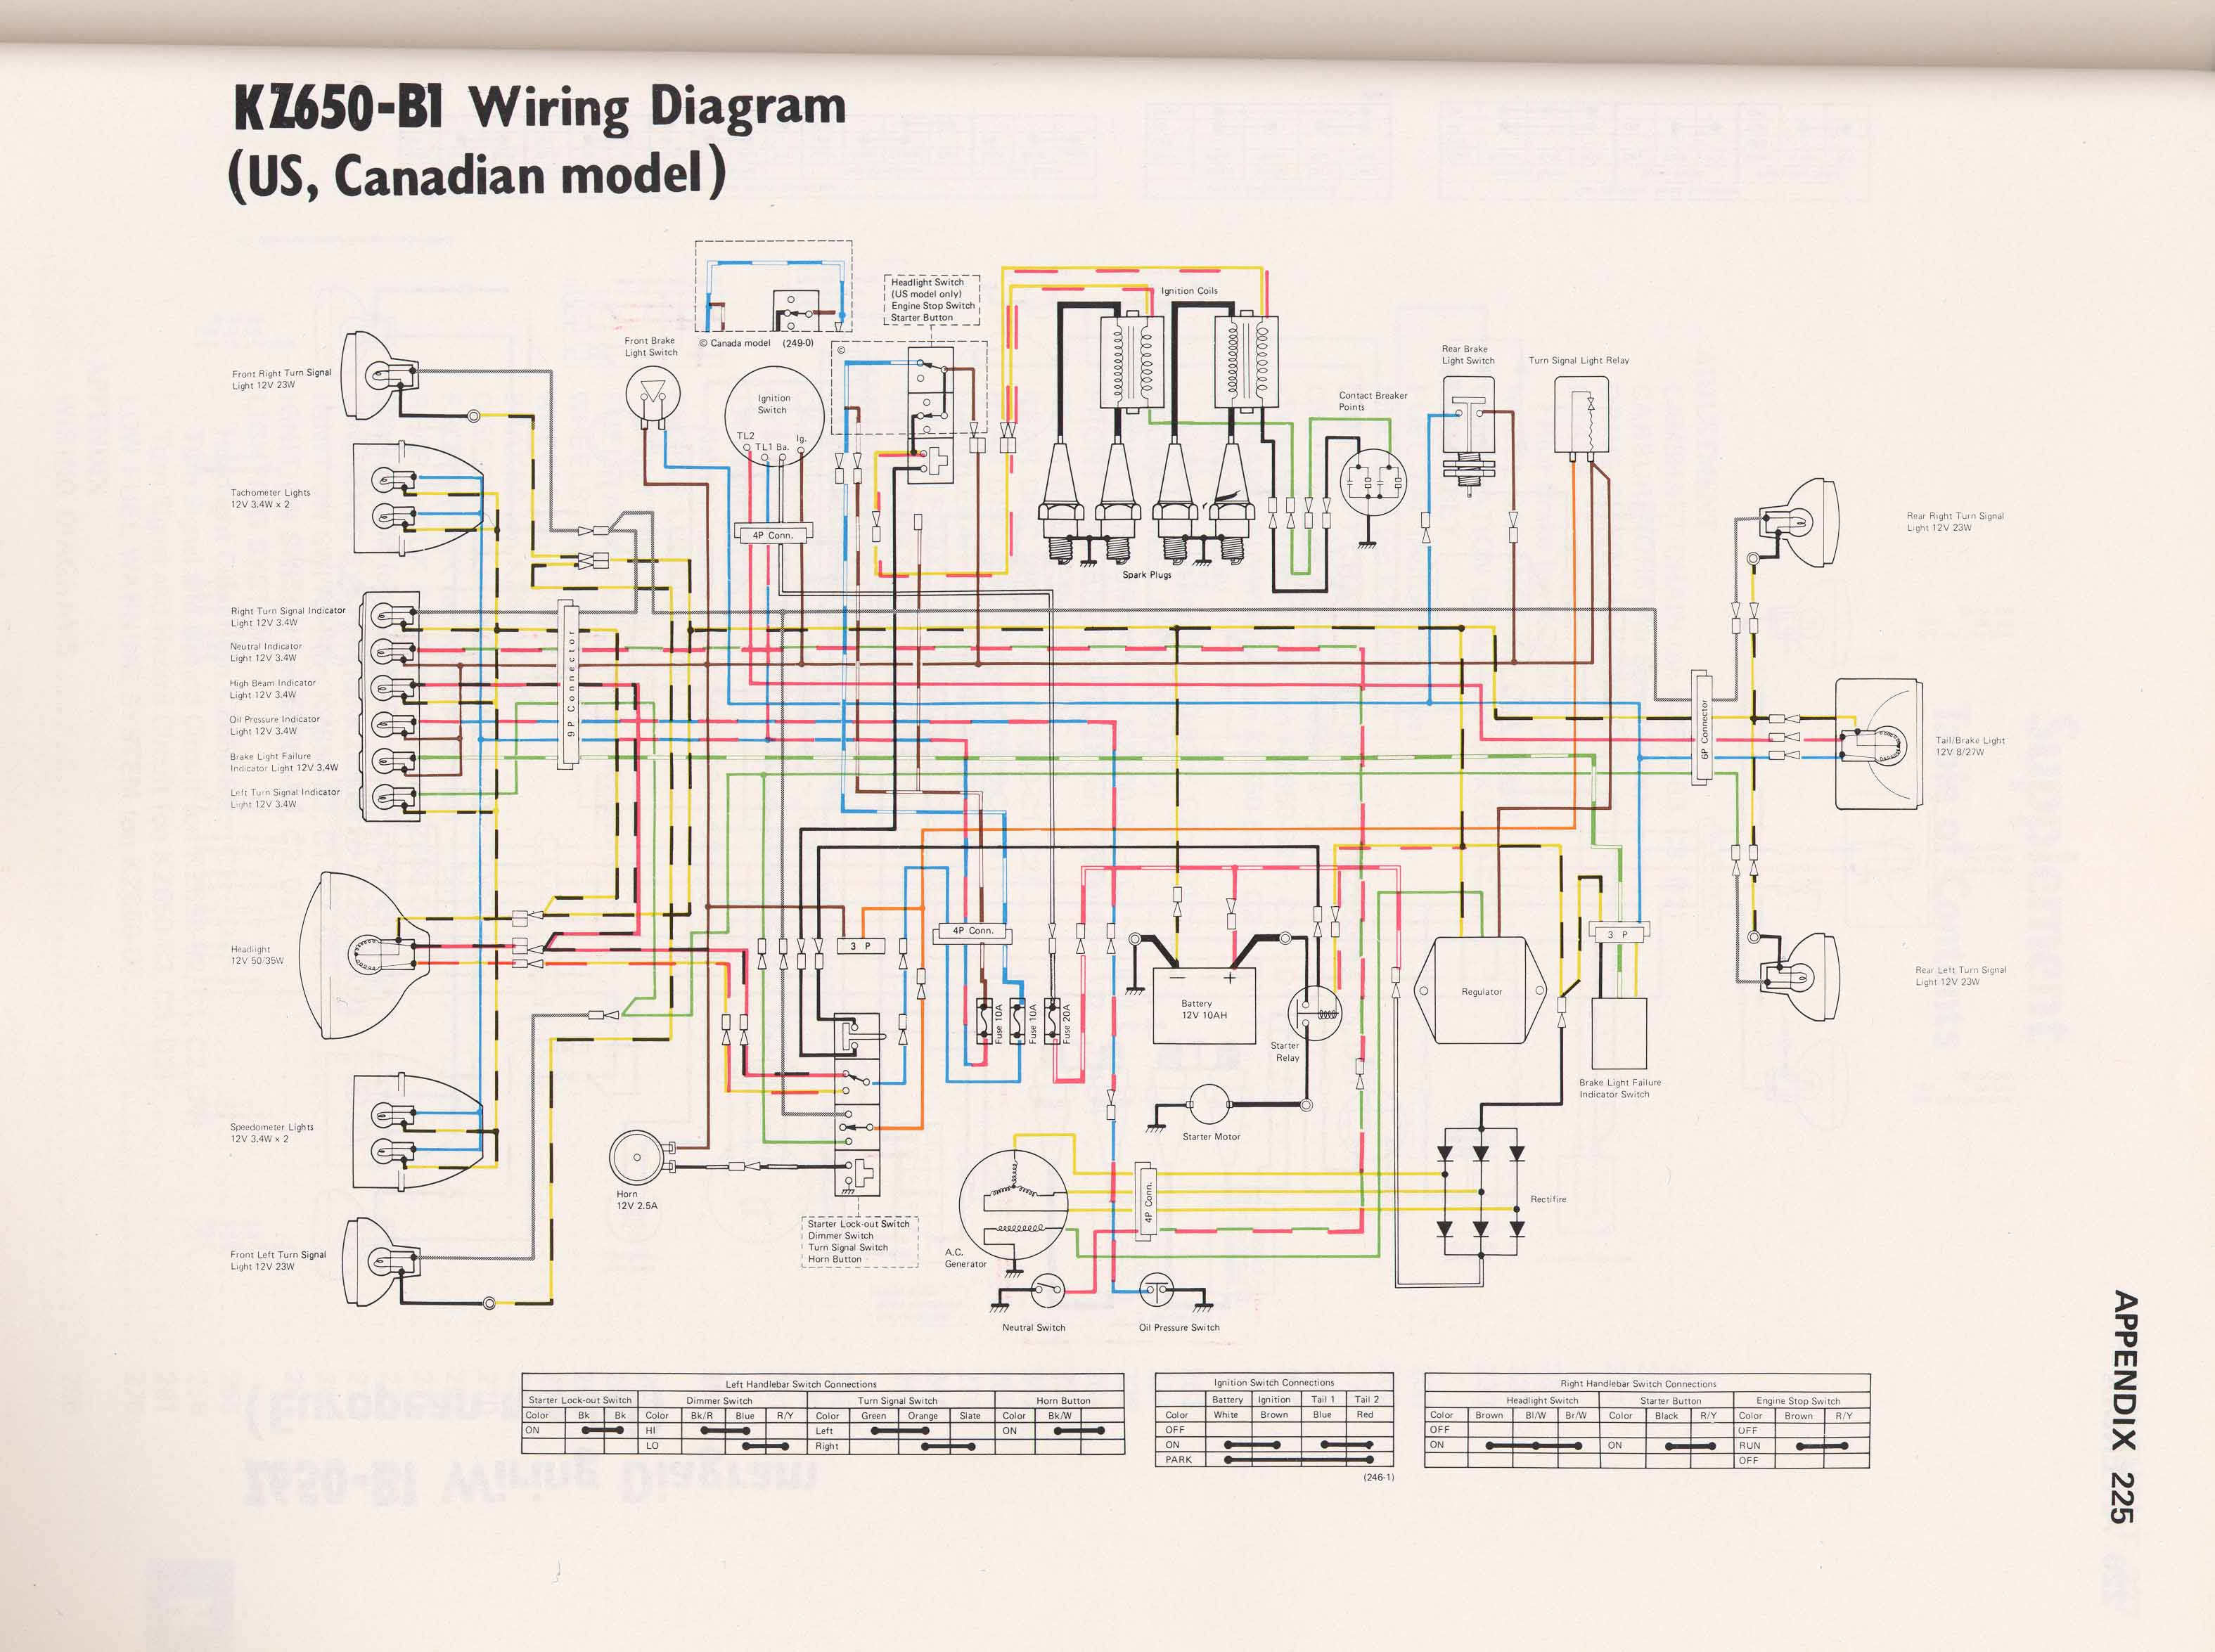 KZ650 B1 kz650 info wiring diagrams Yamaha G16 Golf Cart Wiring Diagram at crackthecode.co